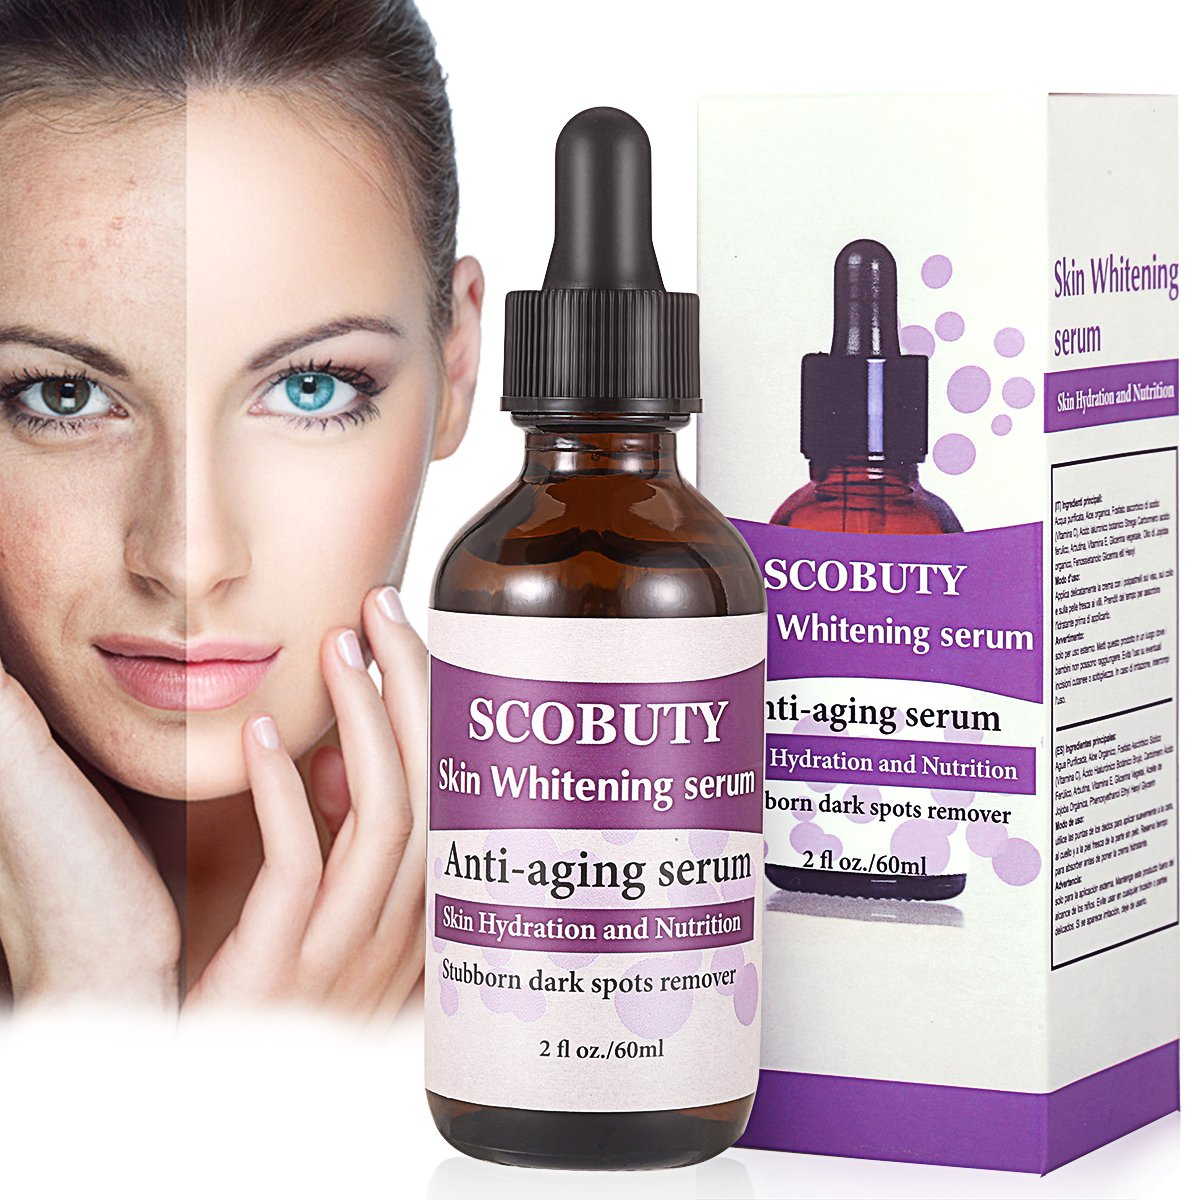 Anti Blemish, Blemish Treatment, Dark Spot Remover, Whitening Serum, Anti Ageing & Anti Wrinkle Serum, Moisturizing Anti Wrinkle, Freckle essence, Spot Treatment, Best Treatment for Wrinkle Repairs Dark Circles, Fades Age Spots and Sun Damage SCOBUTY